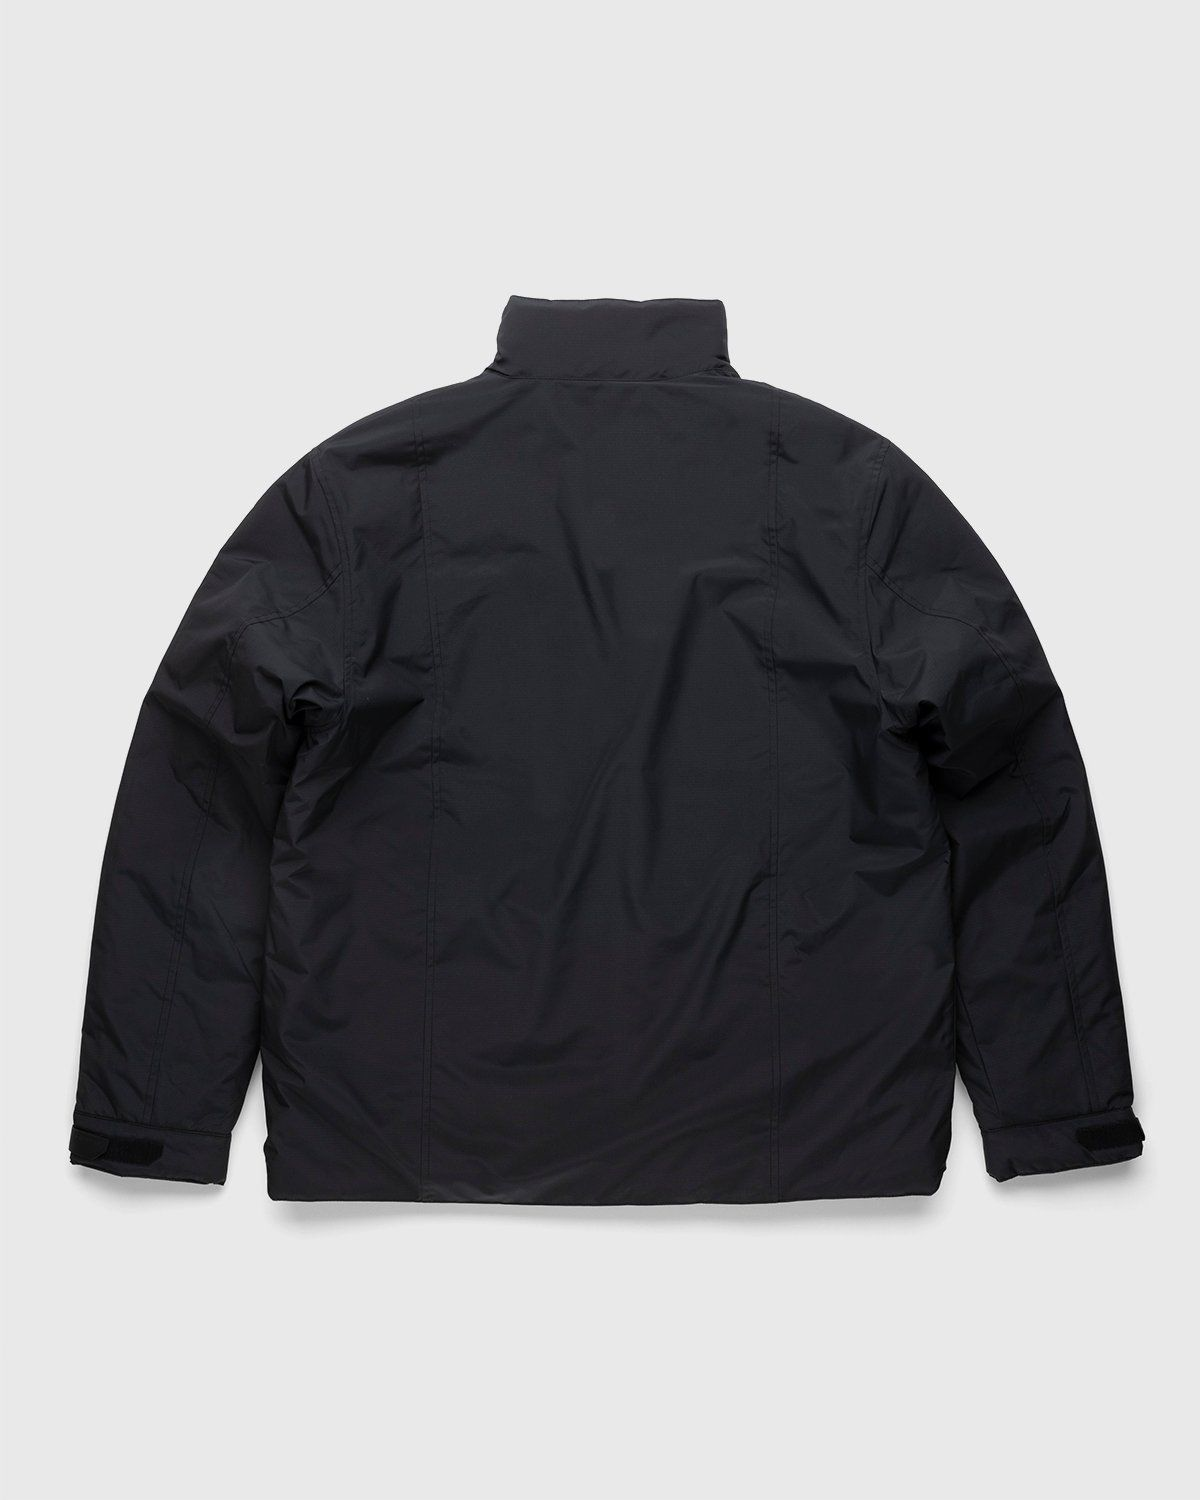 A-COLD-WALL* – Technical Bomber Black - Image 2